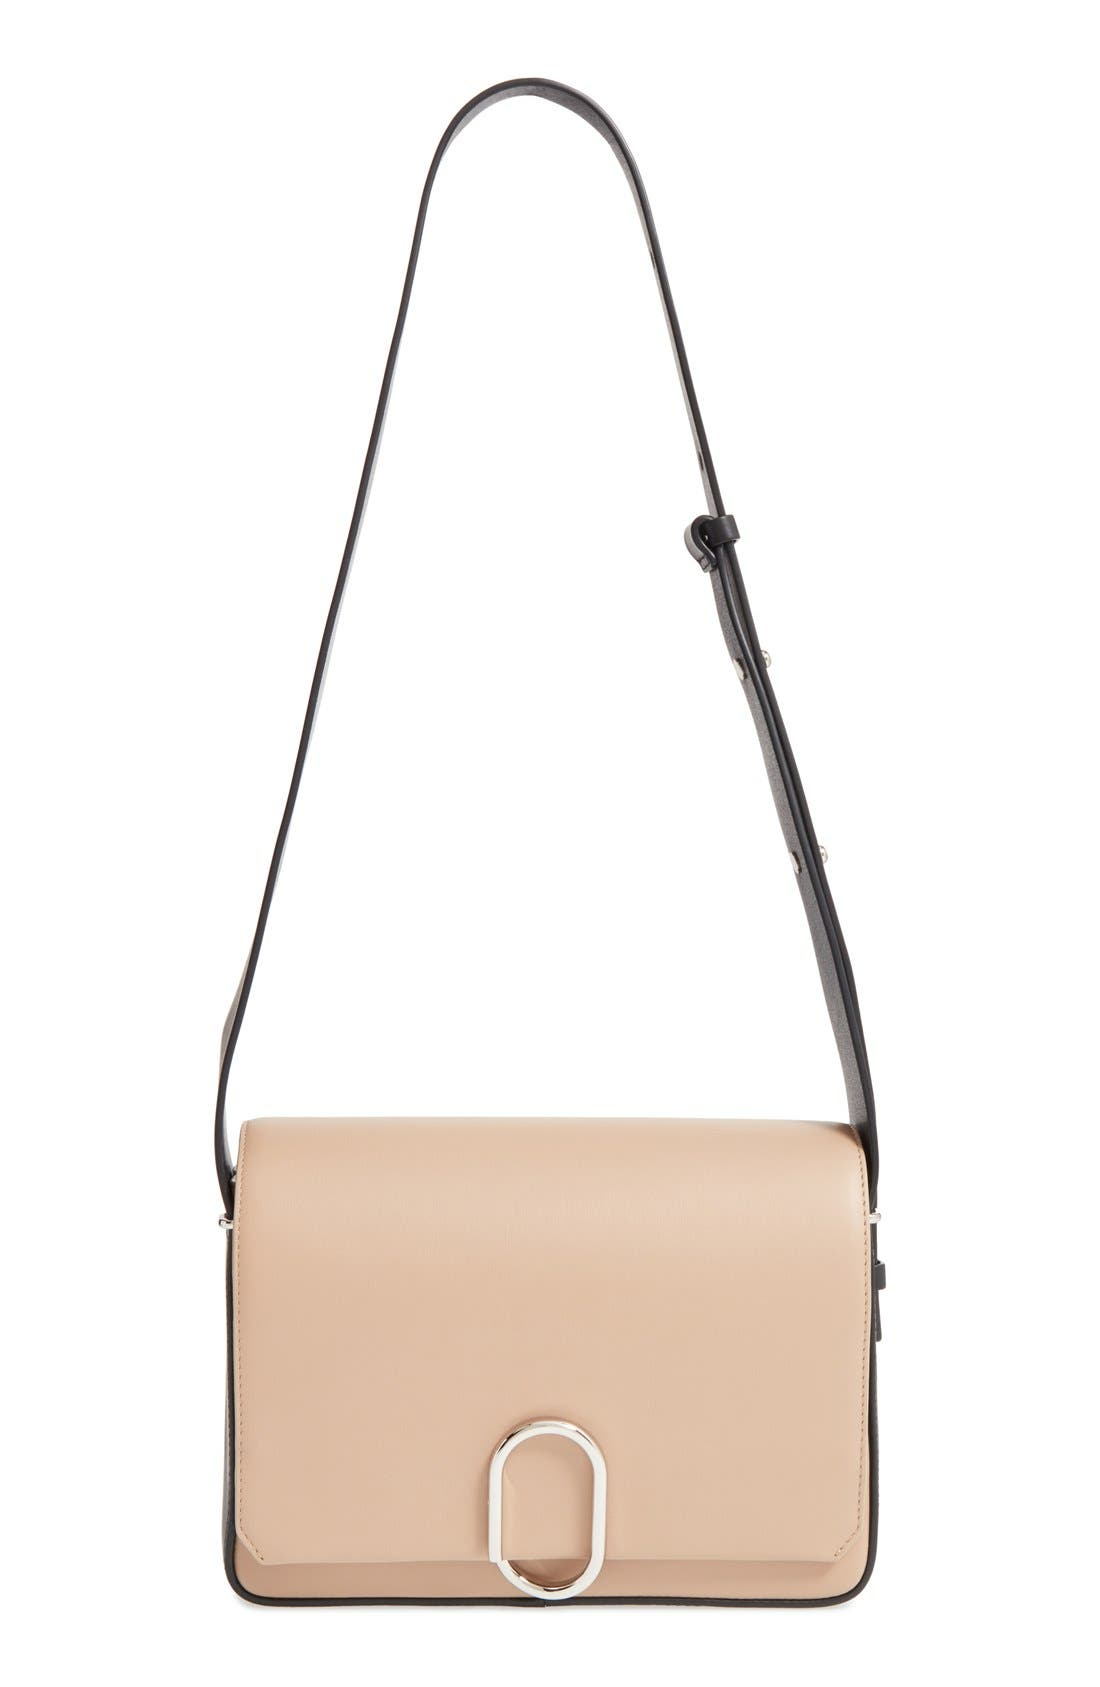 3.1 Phillip Lim 'Alix' Flap Shoulder Bag